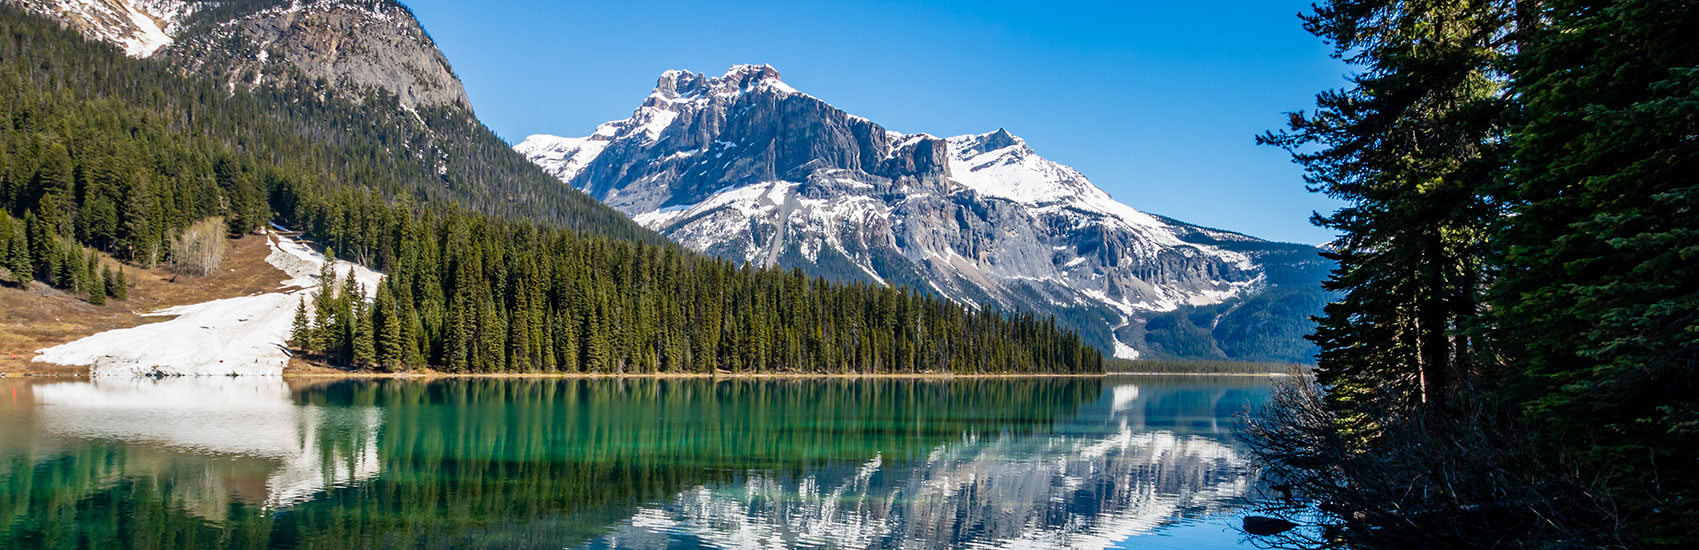 Western Canada's Rockies, Lakes & Wine Country 3